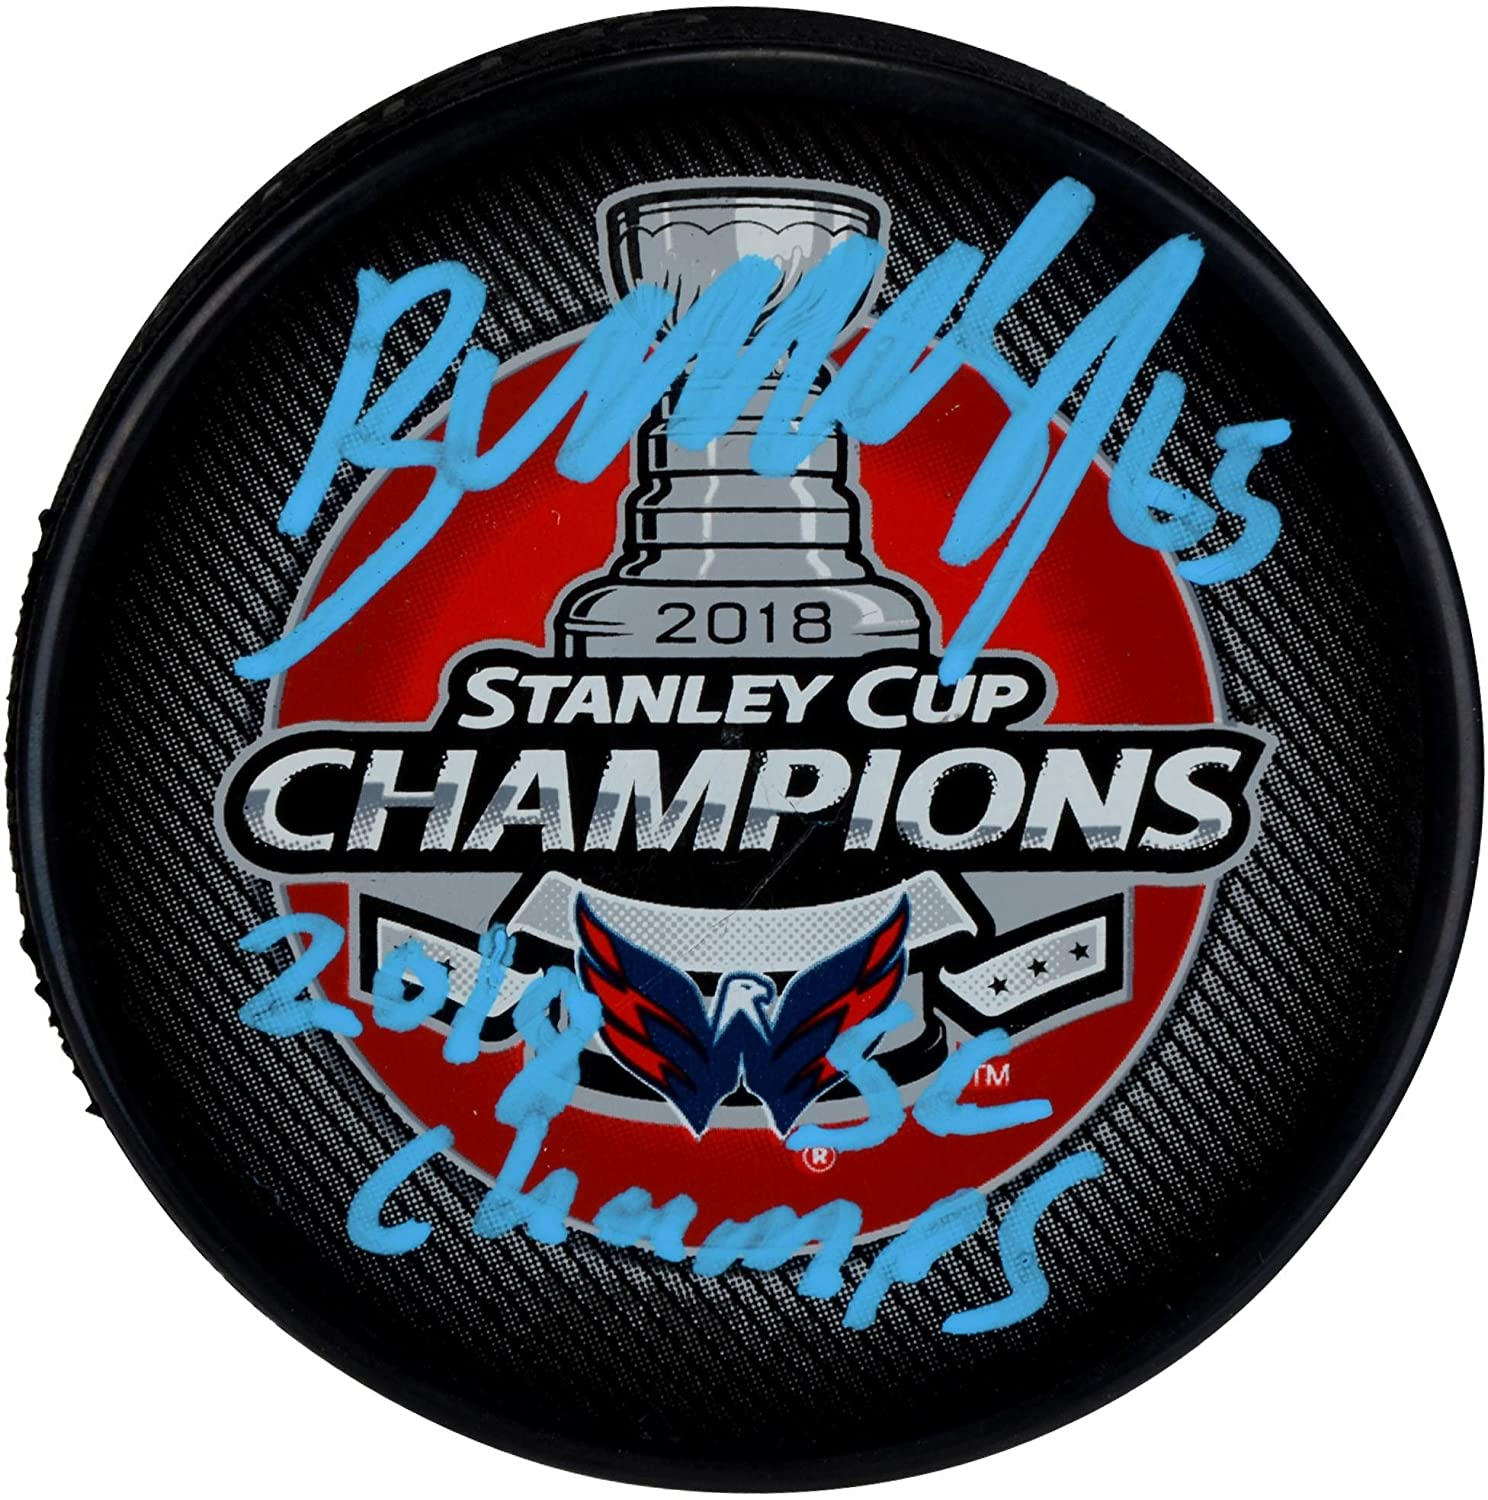 Andre Burakovsky Washington Capitals 2018 Stanley Cup Champions Autographed Stanley Cup Champions Logo Hockey Puck with 2018 SC Champs Inscription - Fanatics Authentic Certified